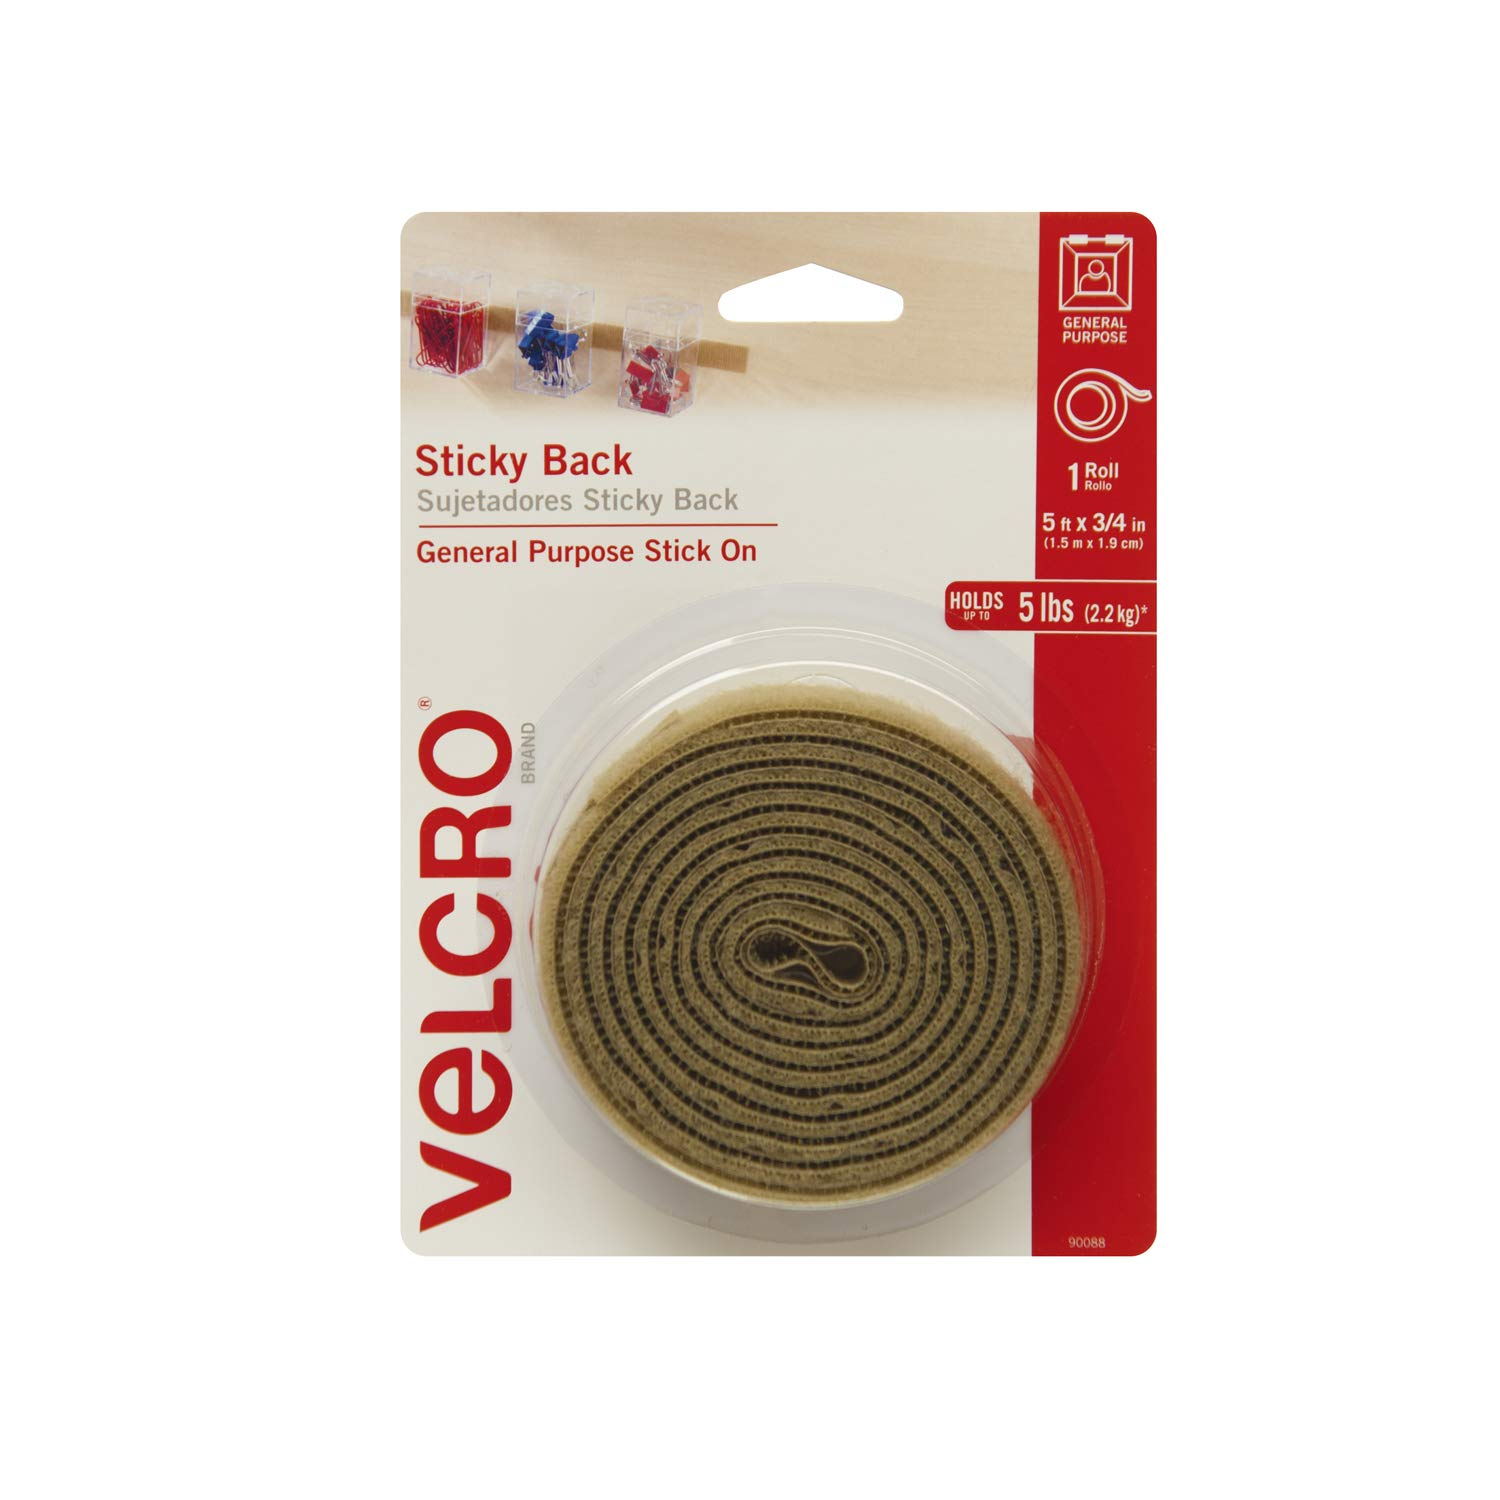 Velcro(r) Brand Fasteners 3/4-inch x 5 ft Sticky Back Tape, Beige 90088